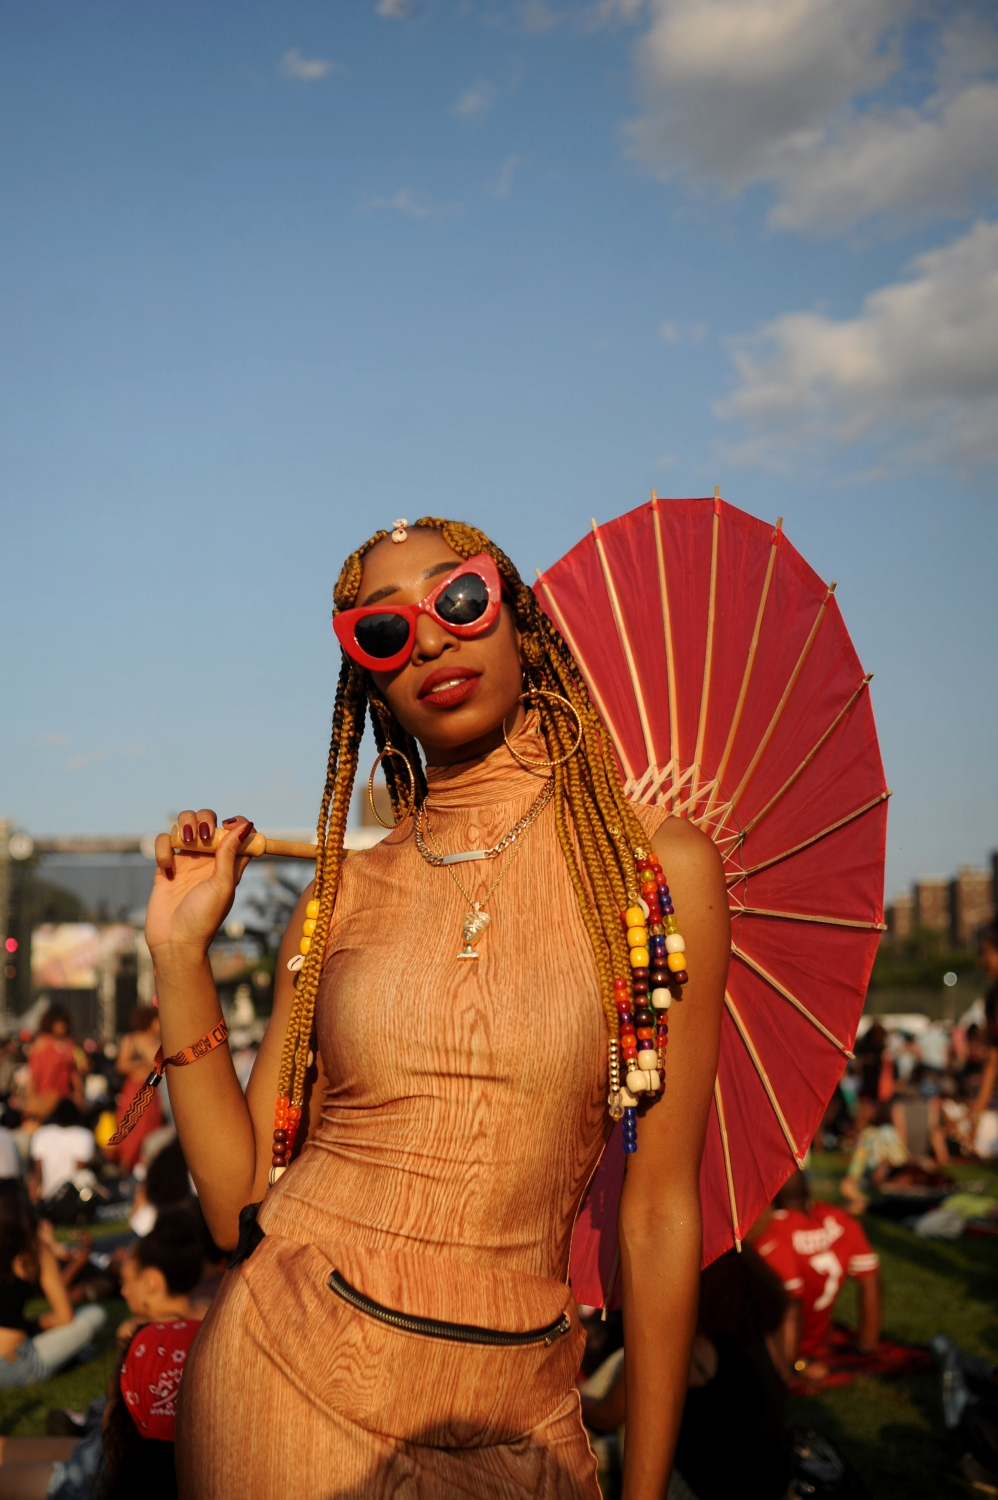 """The first time I was so amazed and overwhelmed by the environment and all the people. And so I had to come back for a second time. It's a really rich place to be. Afropunk means being unapologetic."" Erin Mitchell, 28, Birmingham, Ala."